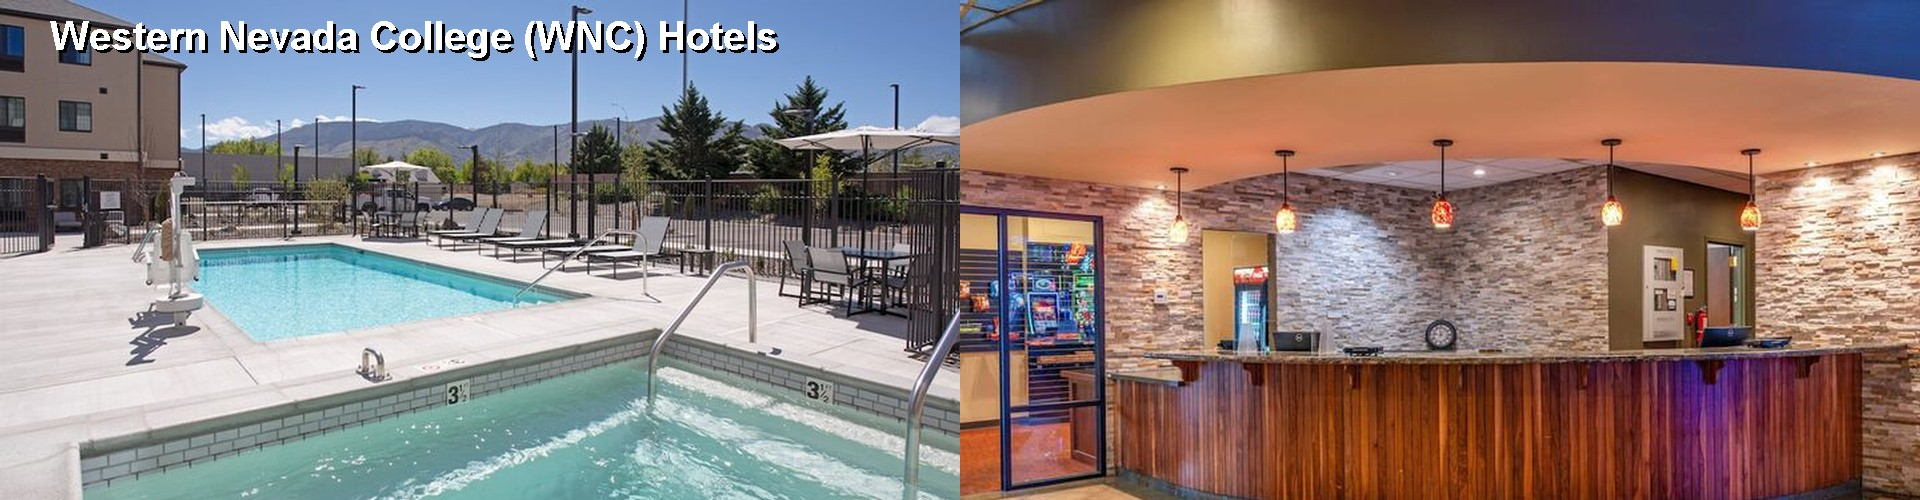 5 Best Hotels near Western Nevada College (WNC)